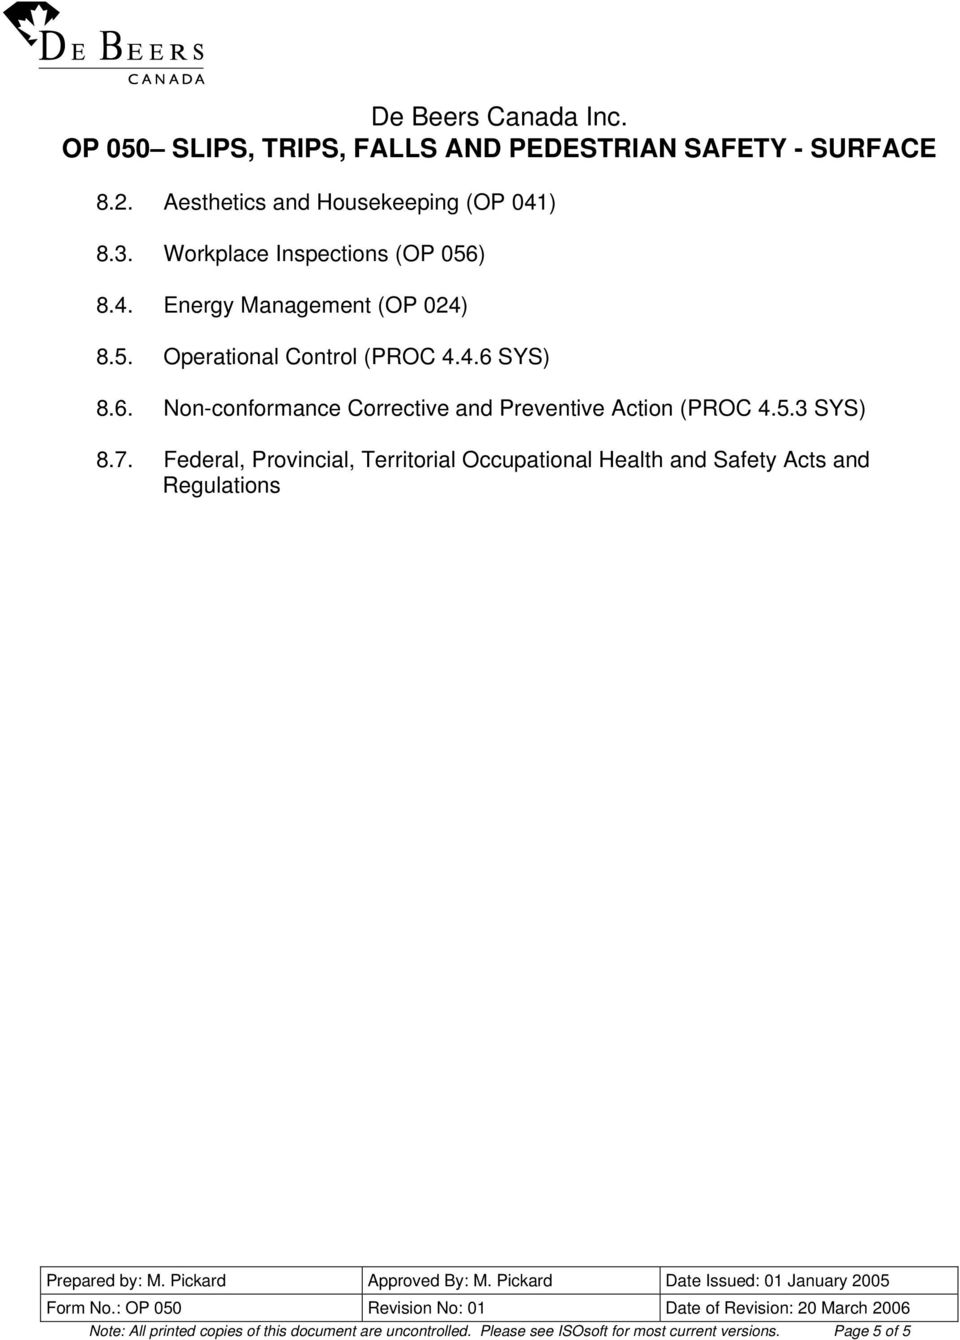 7. Federal, Provincial, Territorial Occupational Health and Safety Acts and Regulations Note: All printed